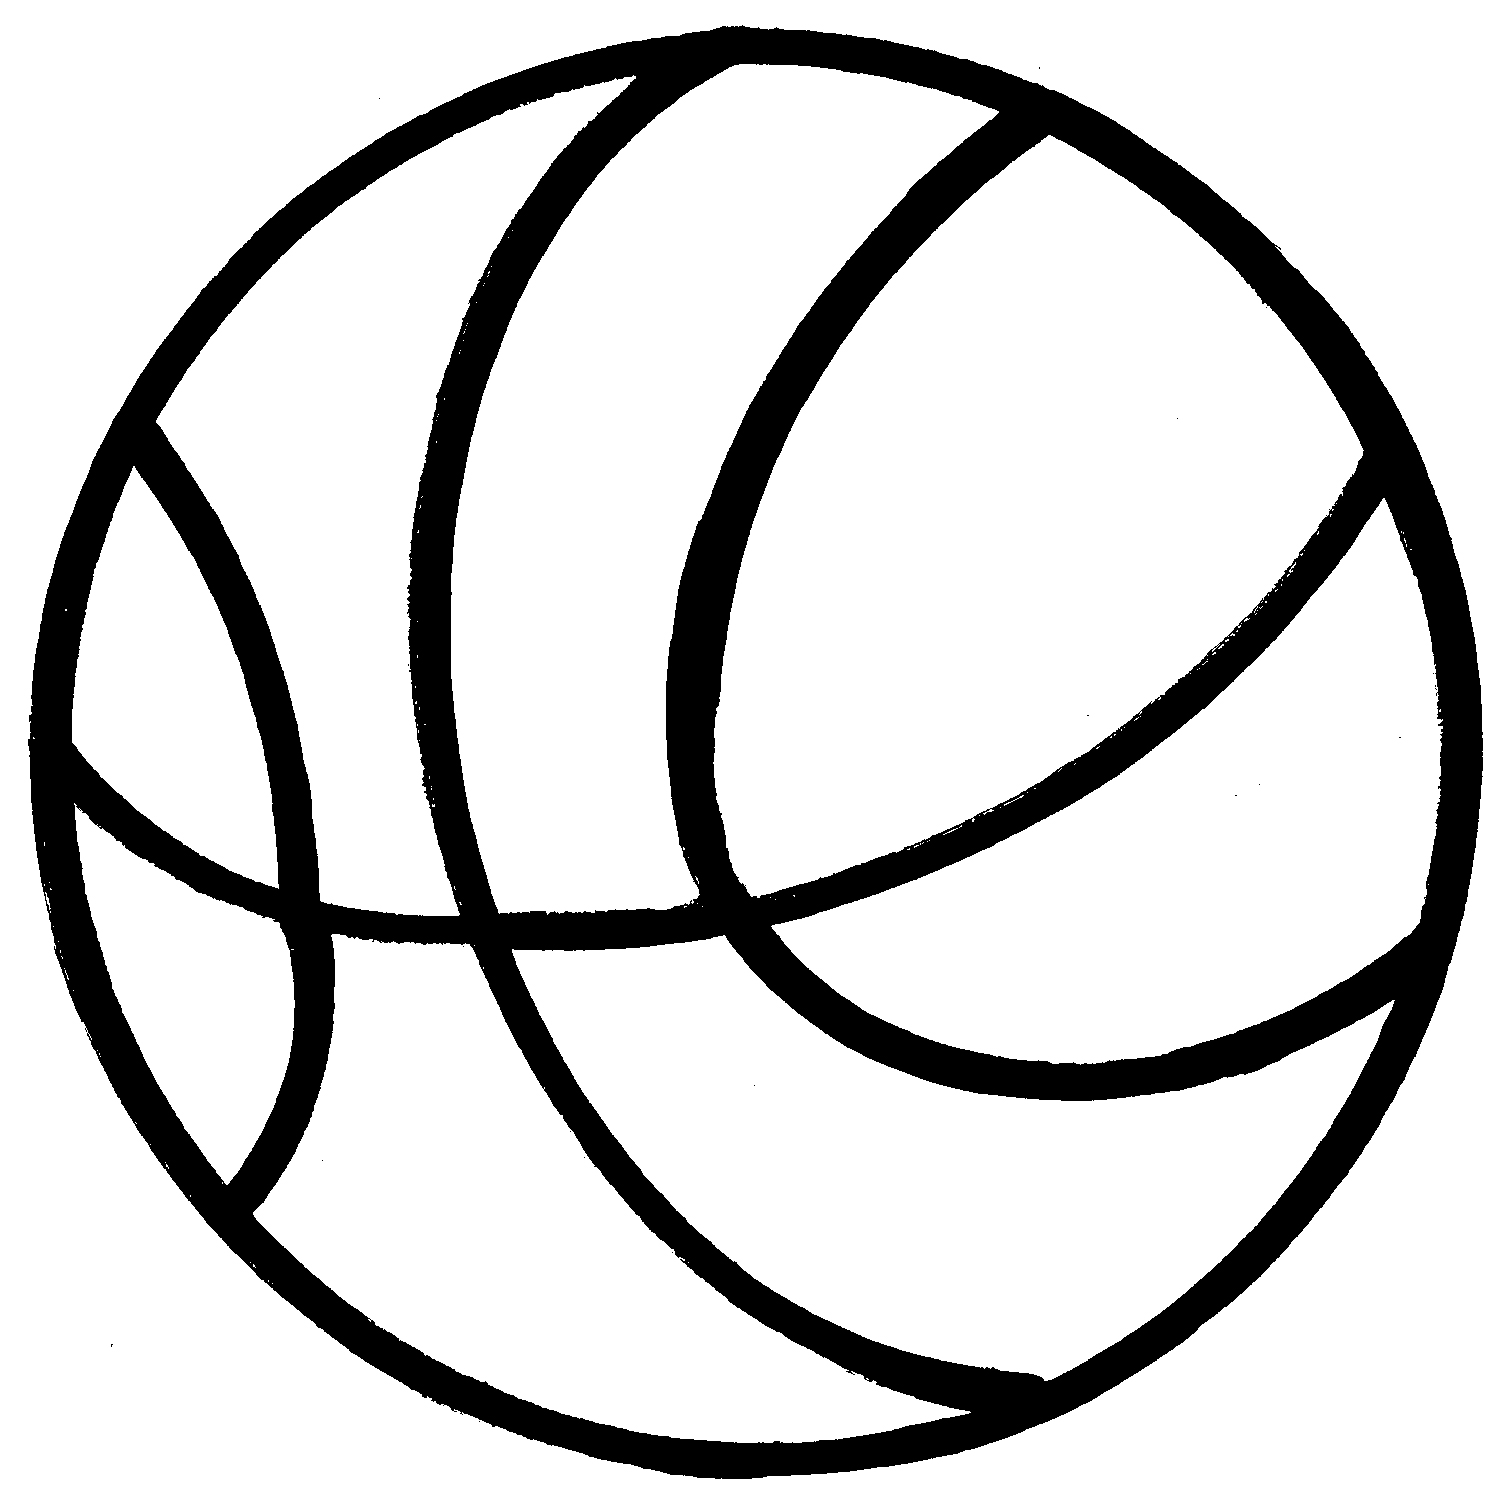 1509x1500 Basketball Clip Art Free Basketball Clipart To Use For Party